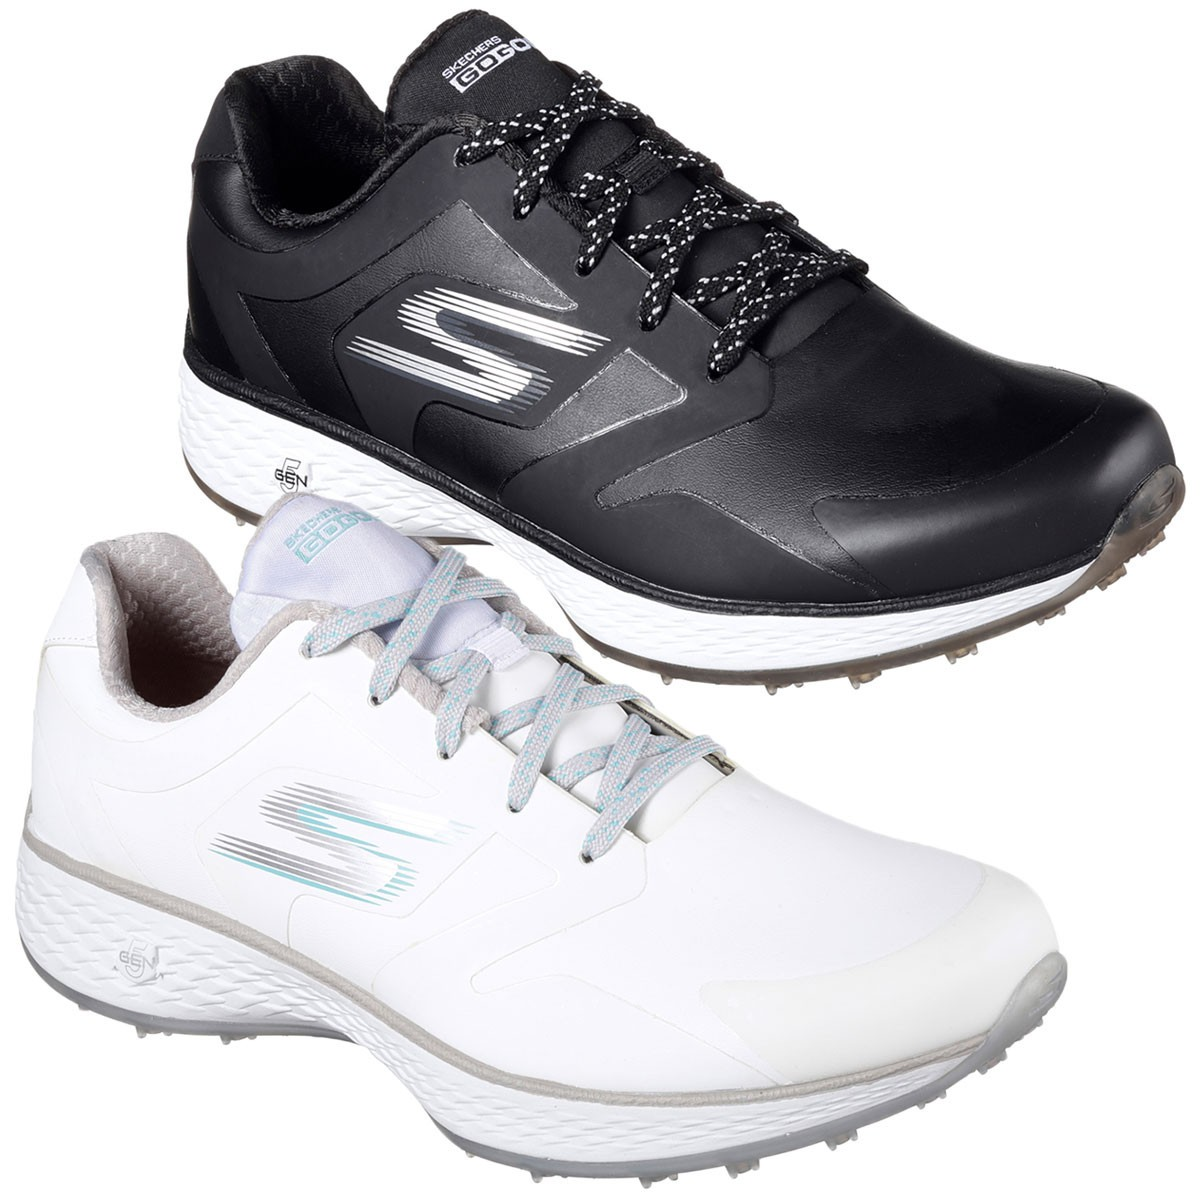 Skechers Golf Shoes Size